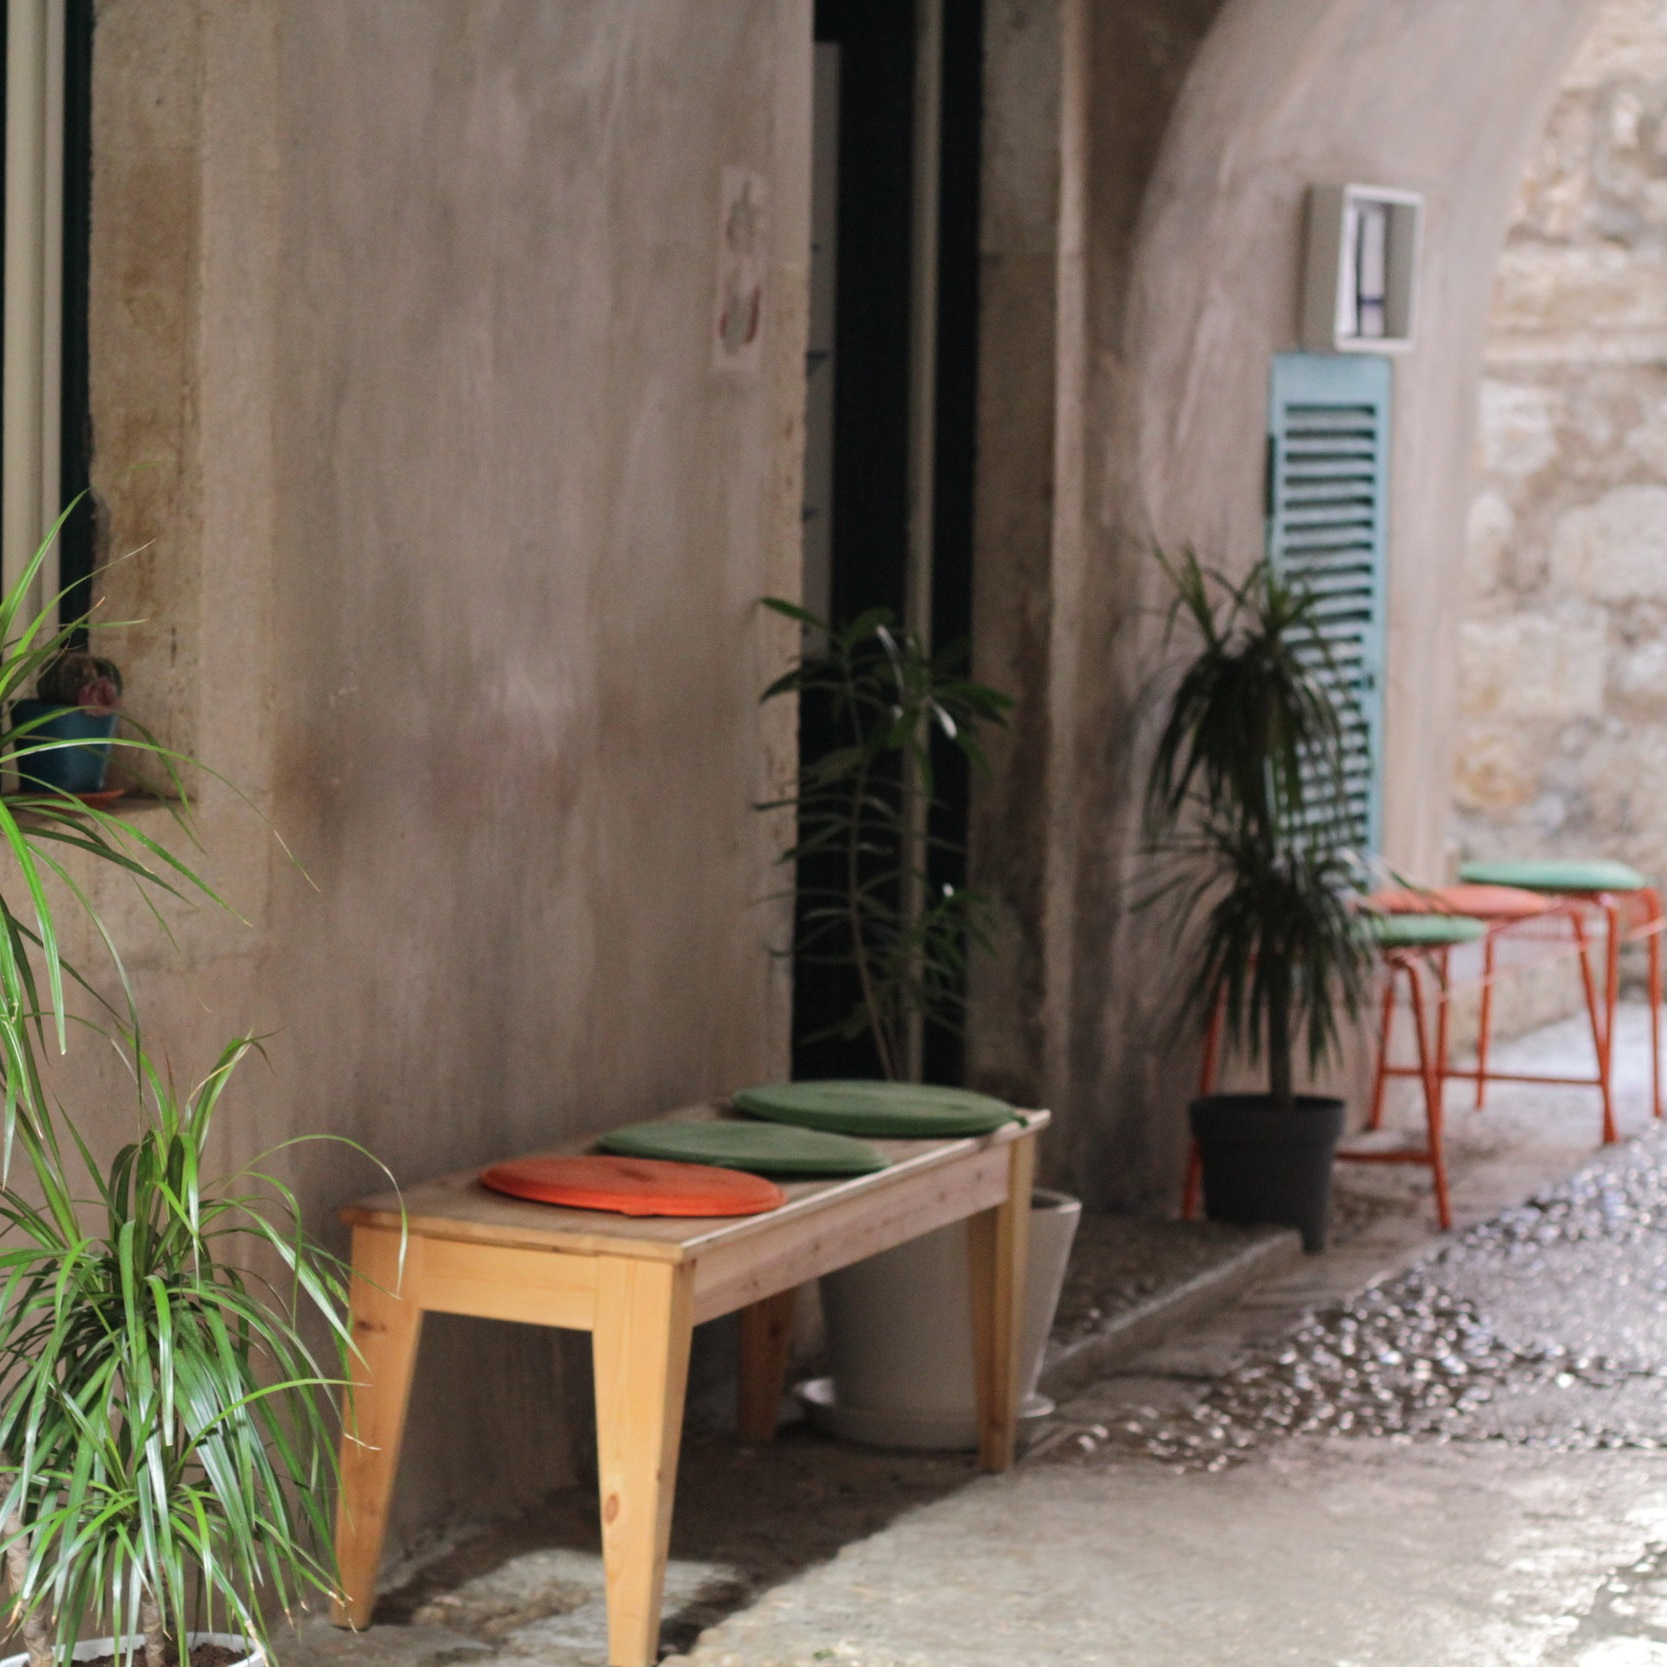 Cogito shop / dubrovnik old town - Monday - Saturday 8 am - 8 pmSunday 9 am - 7 pm